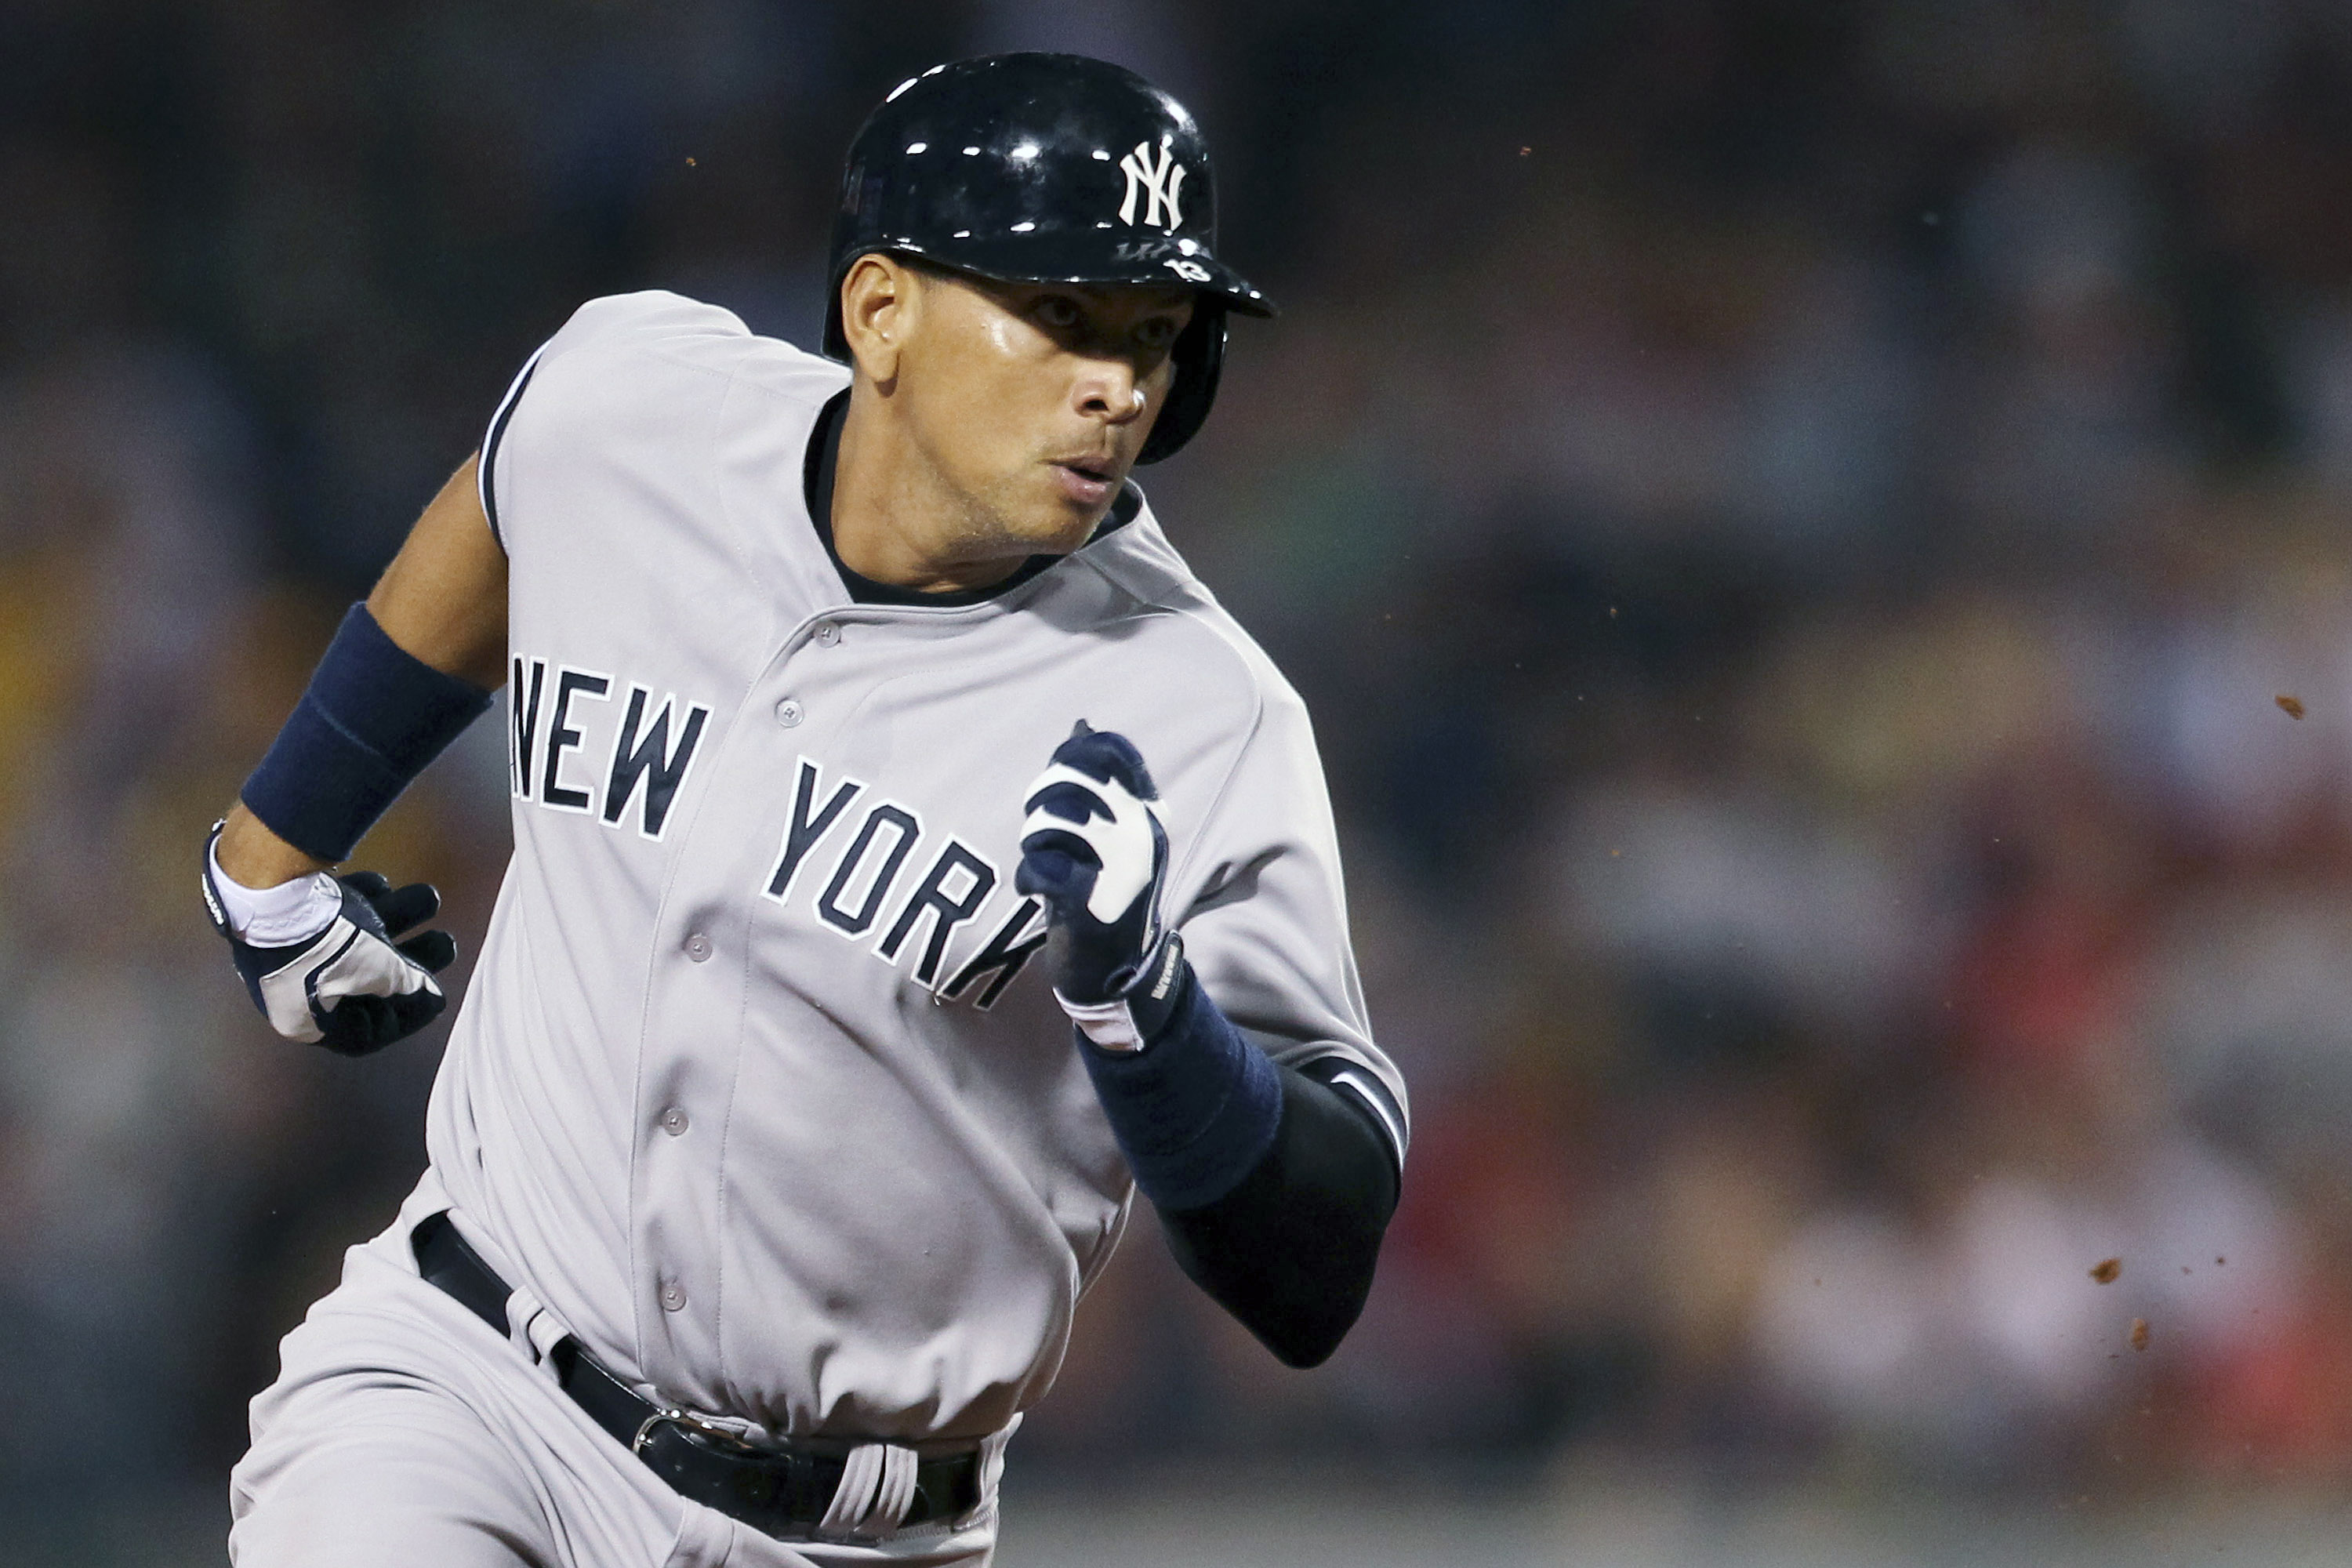 New York Yankees' Alex Rodriguez runs to third base in their MLB baseball game against the Boston Red Sox in Boston on August 18, 2013